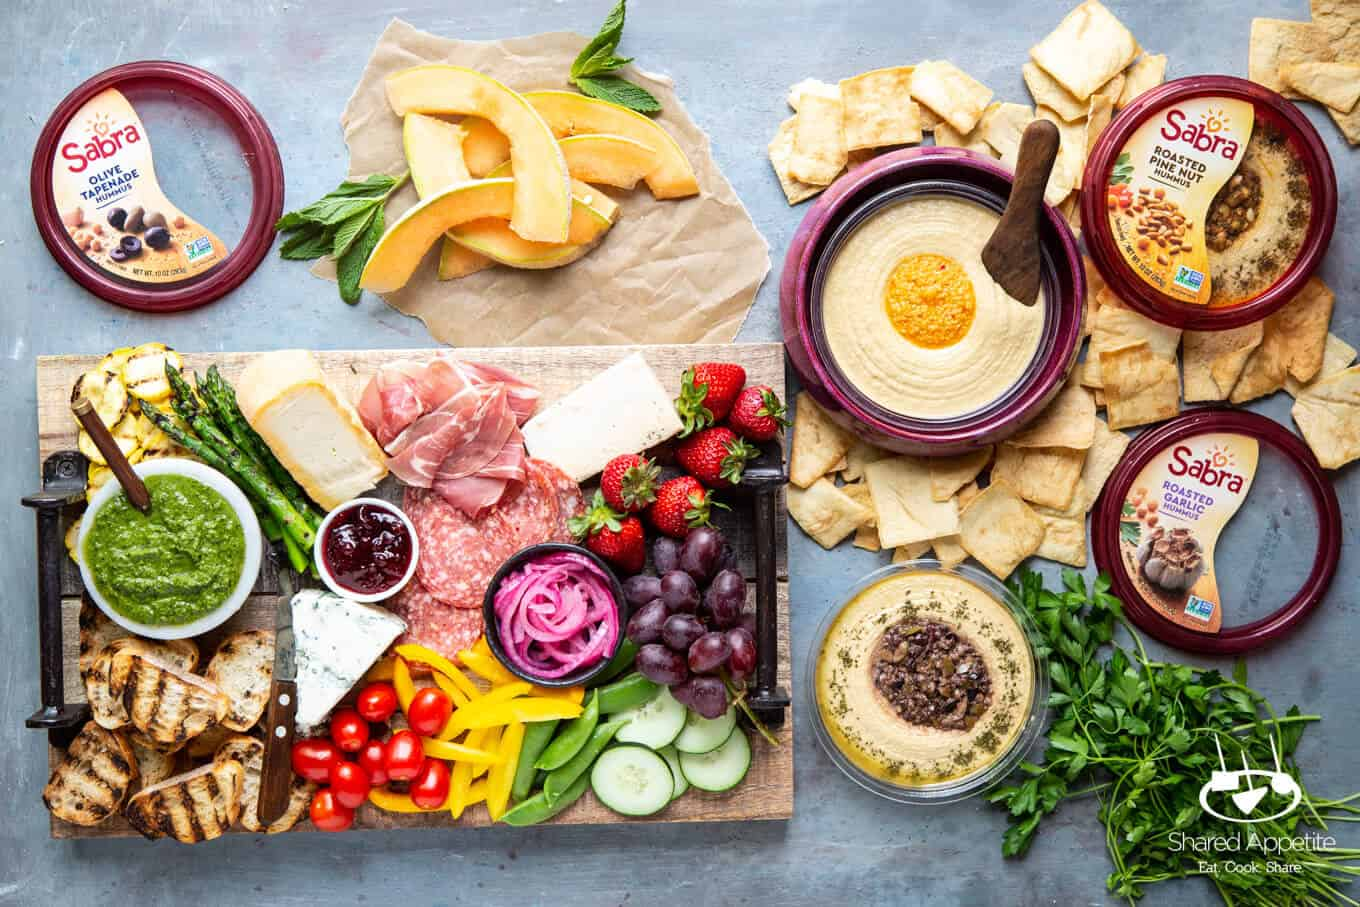 Sabra Hummus for How To Build A Summer Charcuterie Board | sharedappetite.com